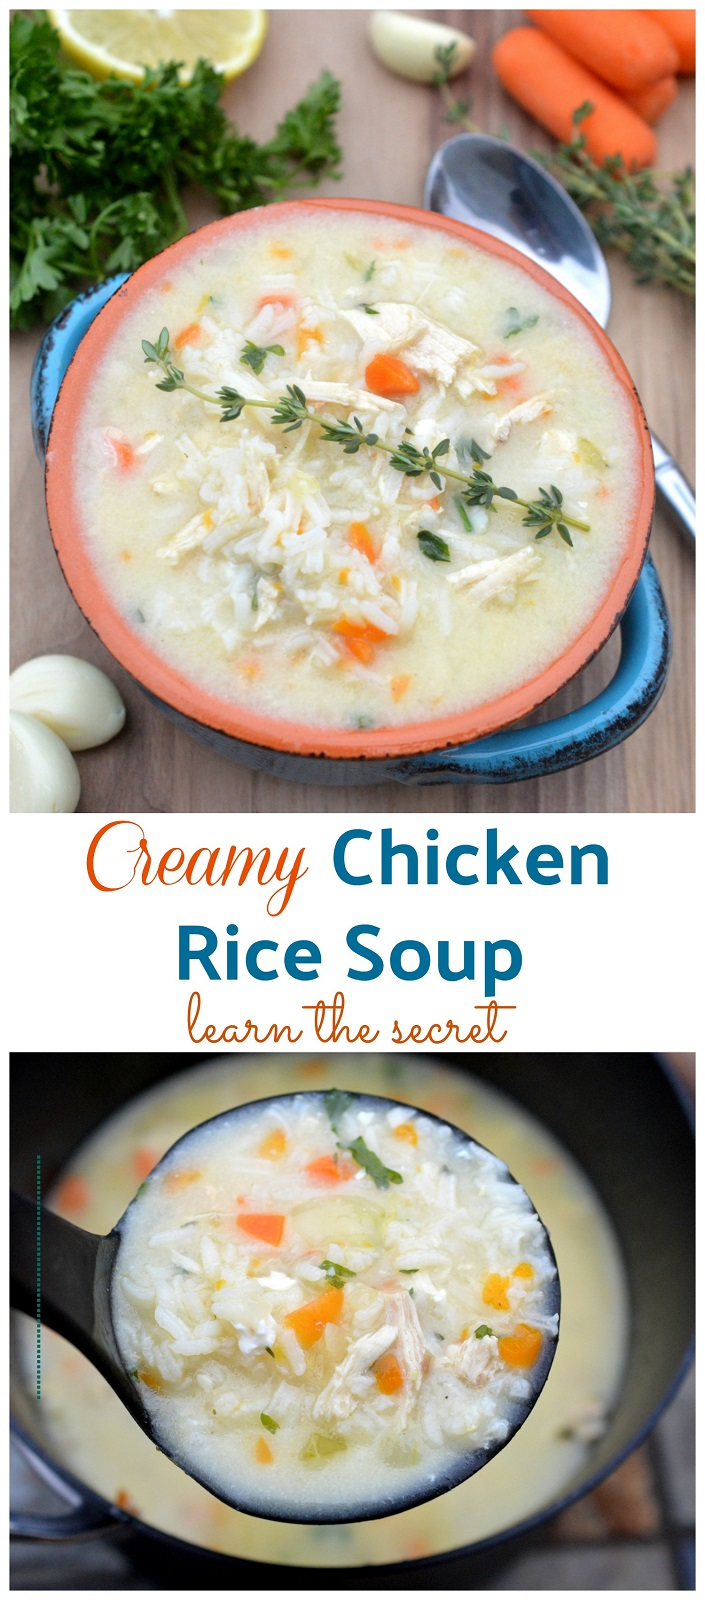 Recipe for Chicken Rice Soup